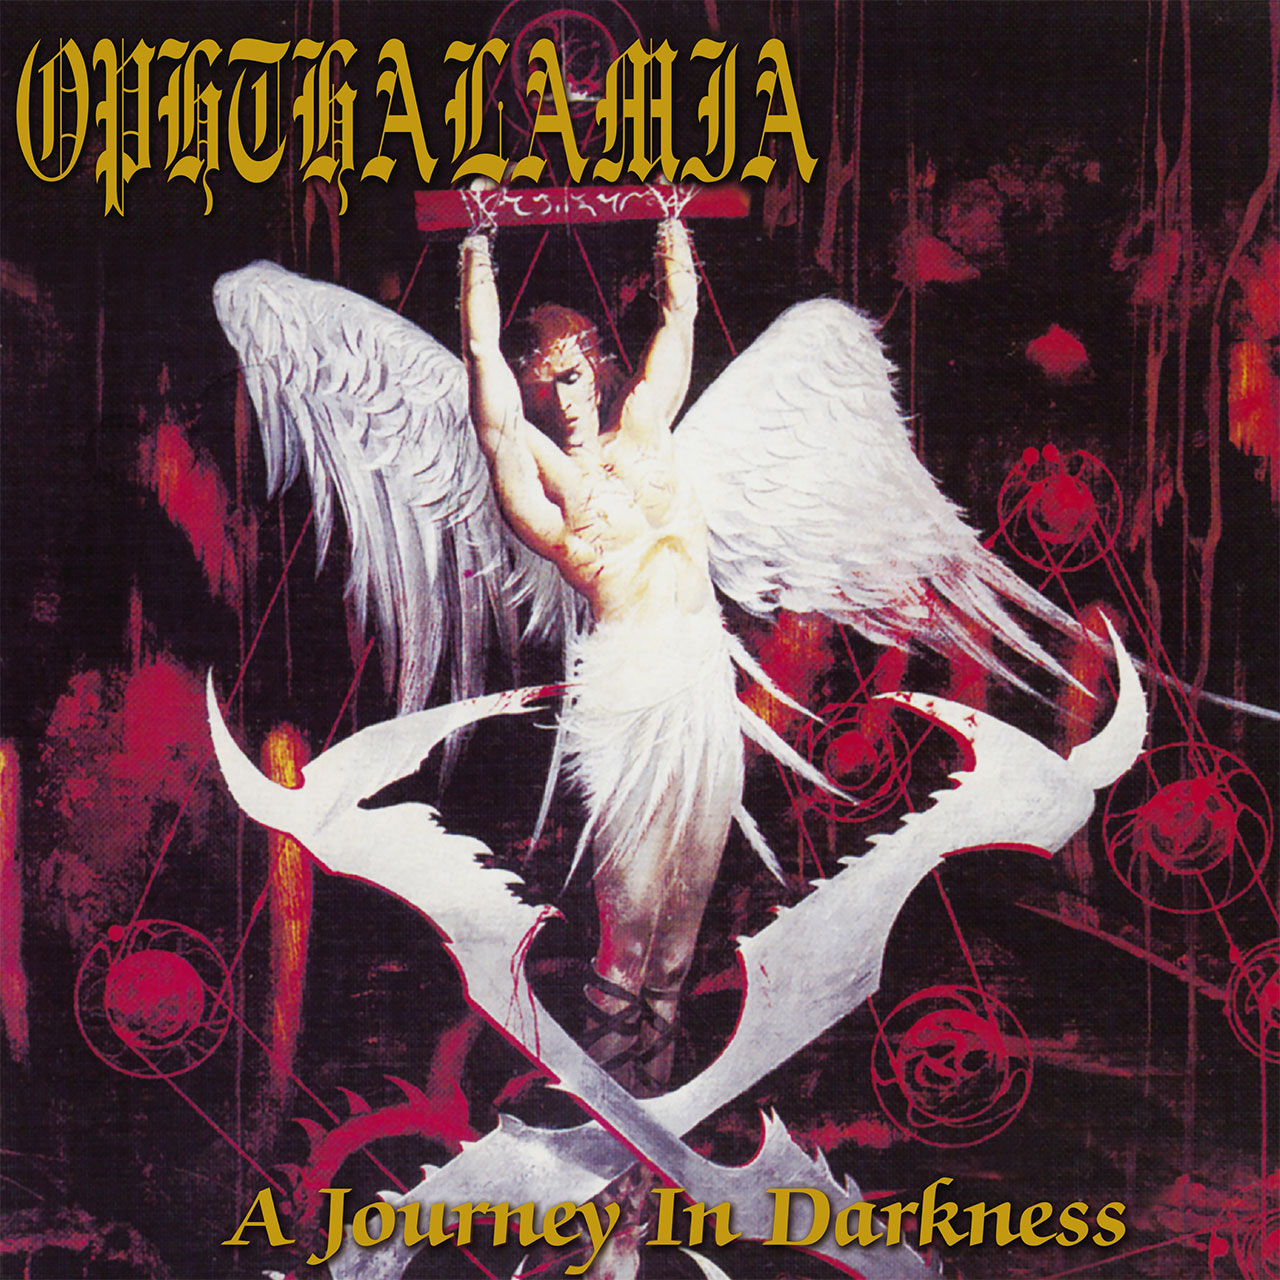 Ophthalamia - A Journey in Darkness (2009 Reissue) (CD)